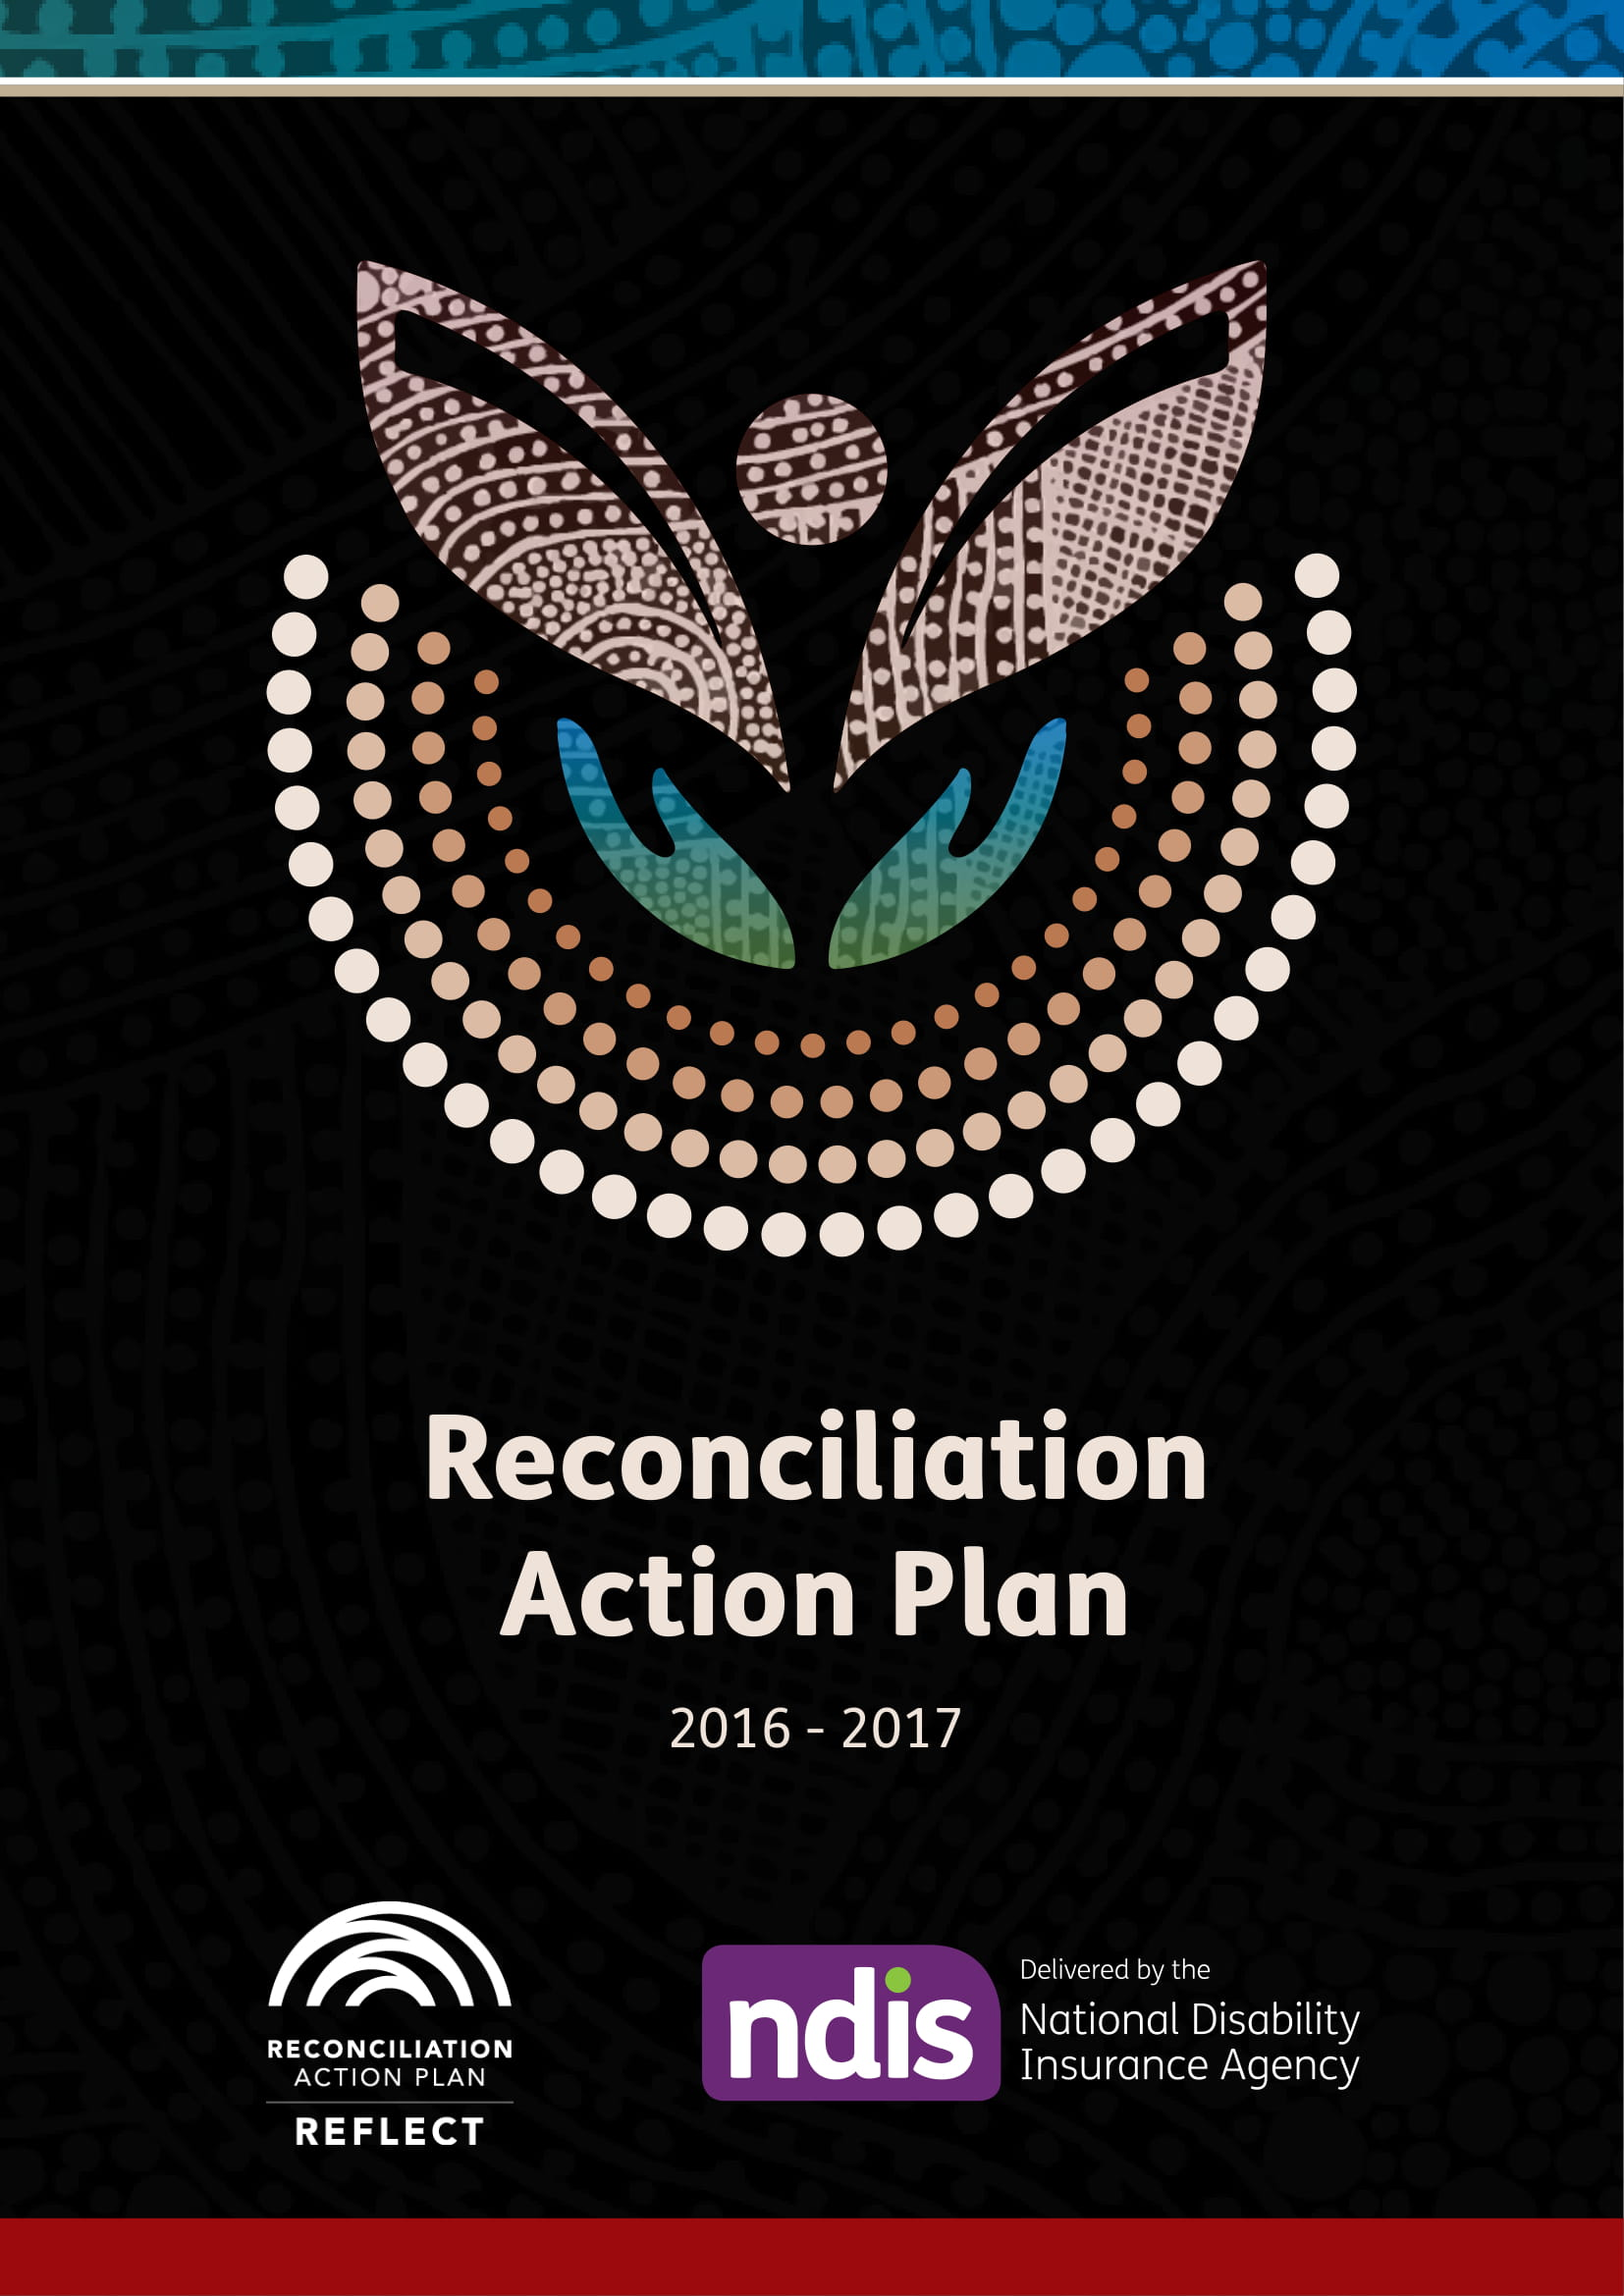 standard reconciliation action plan example 01